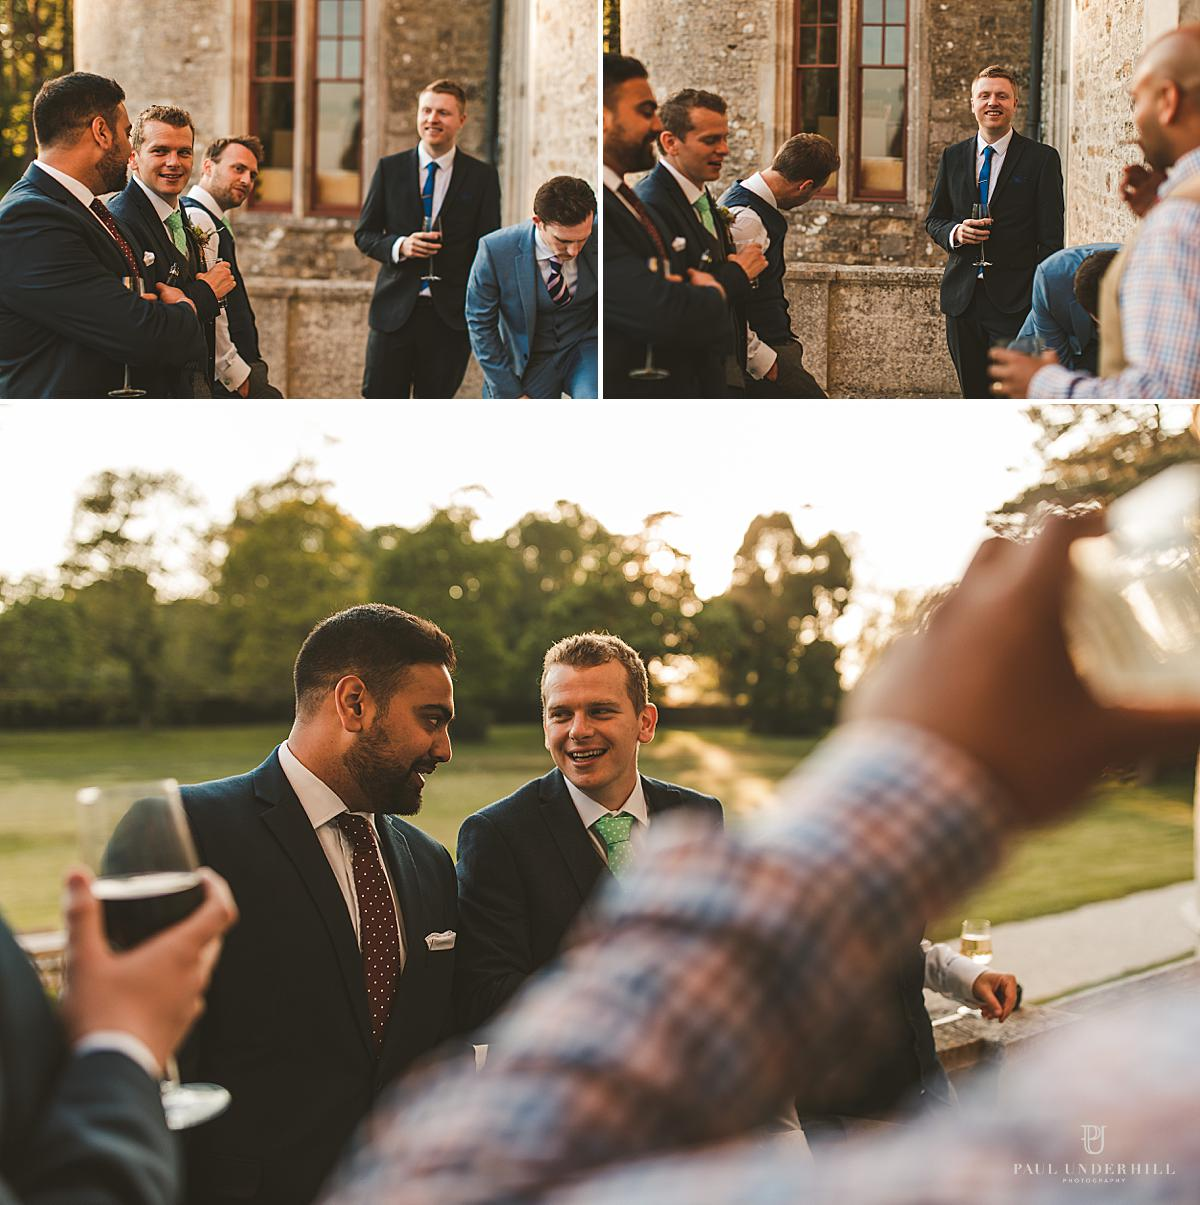 Lulworth Castle wedding portraits